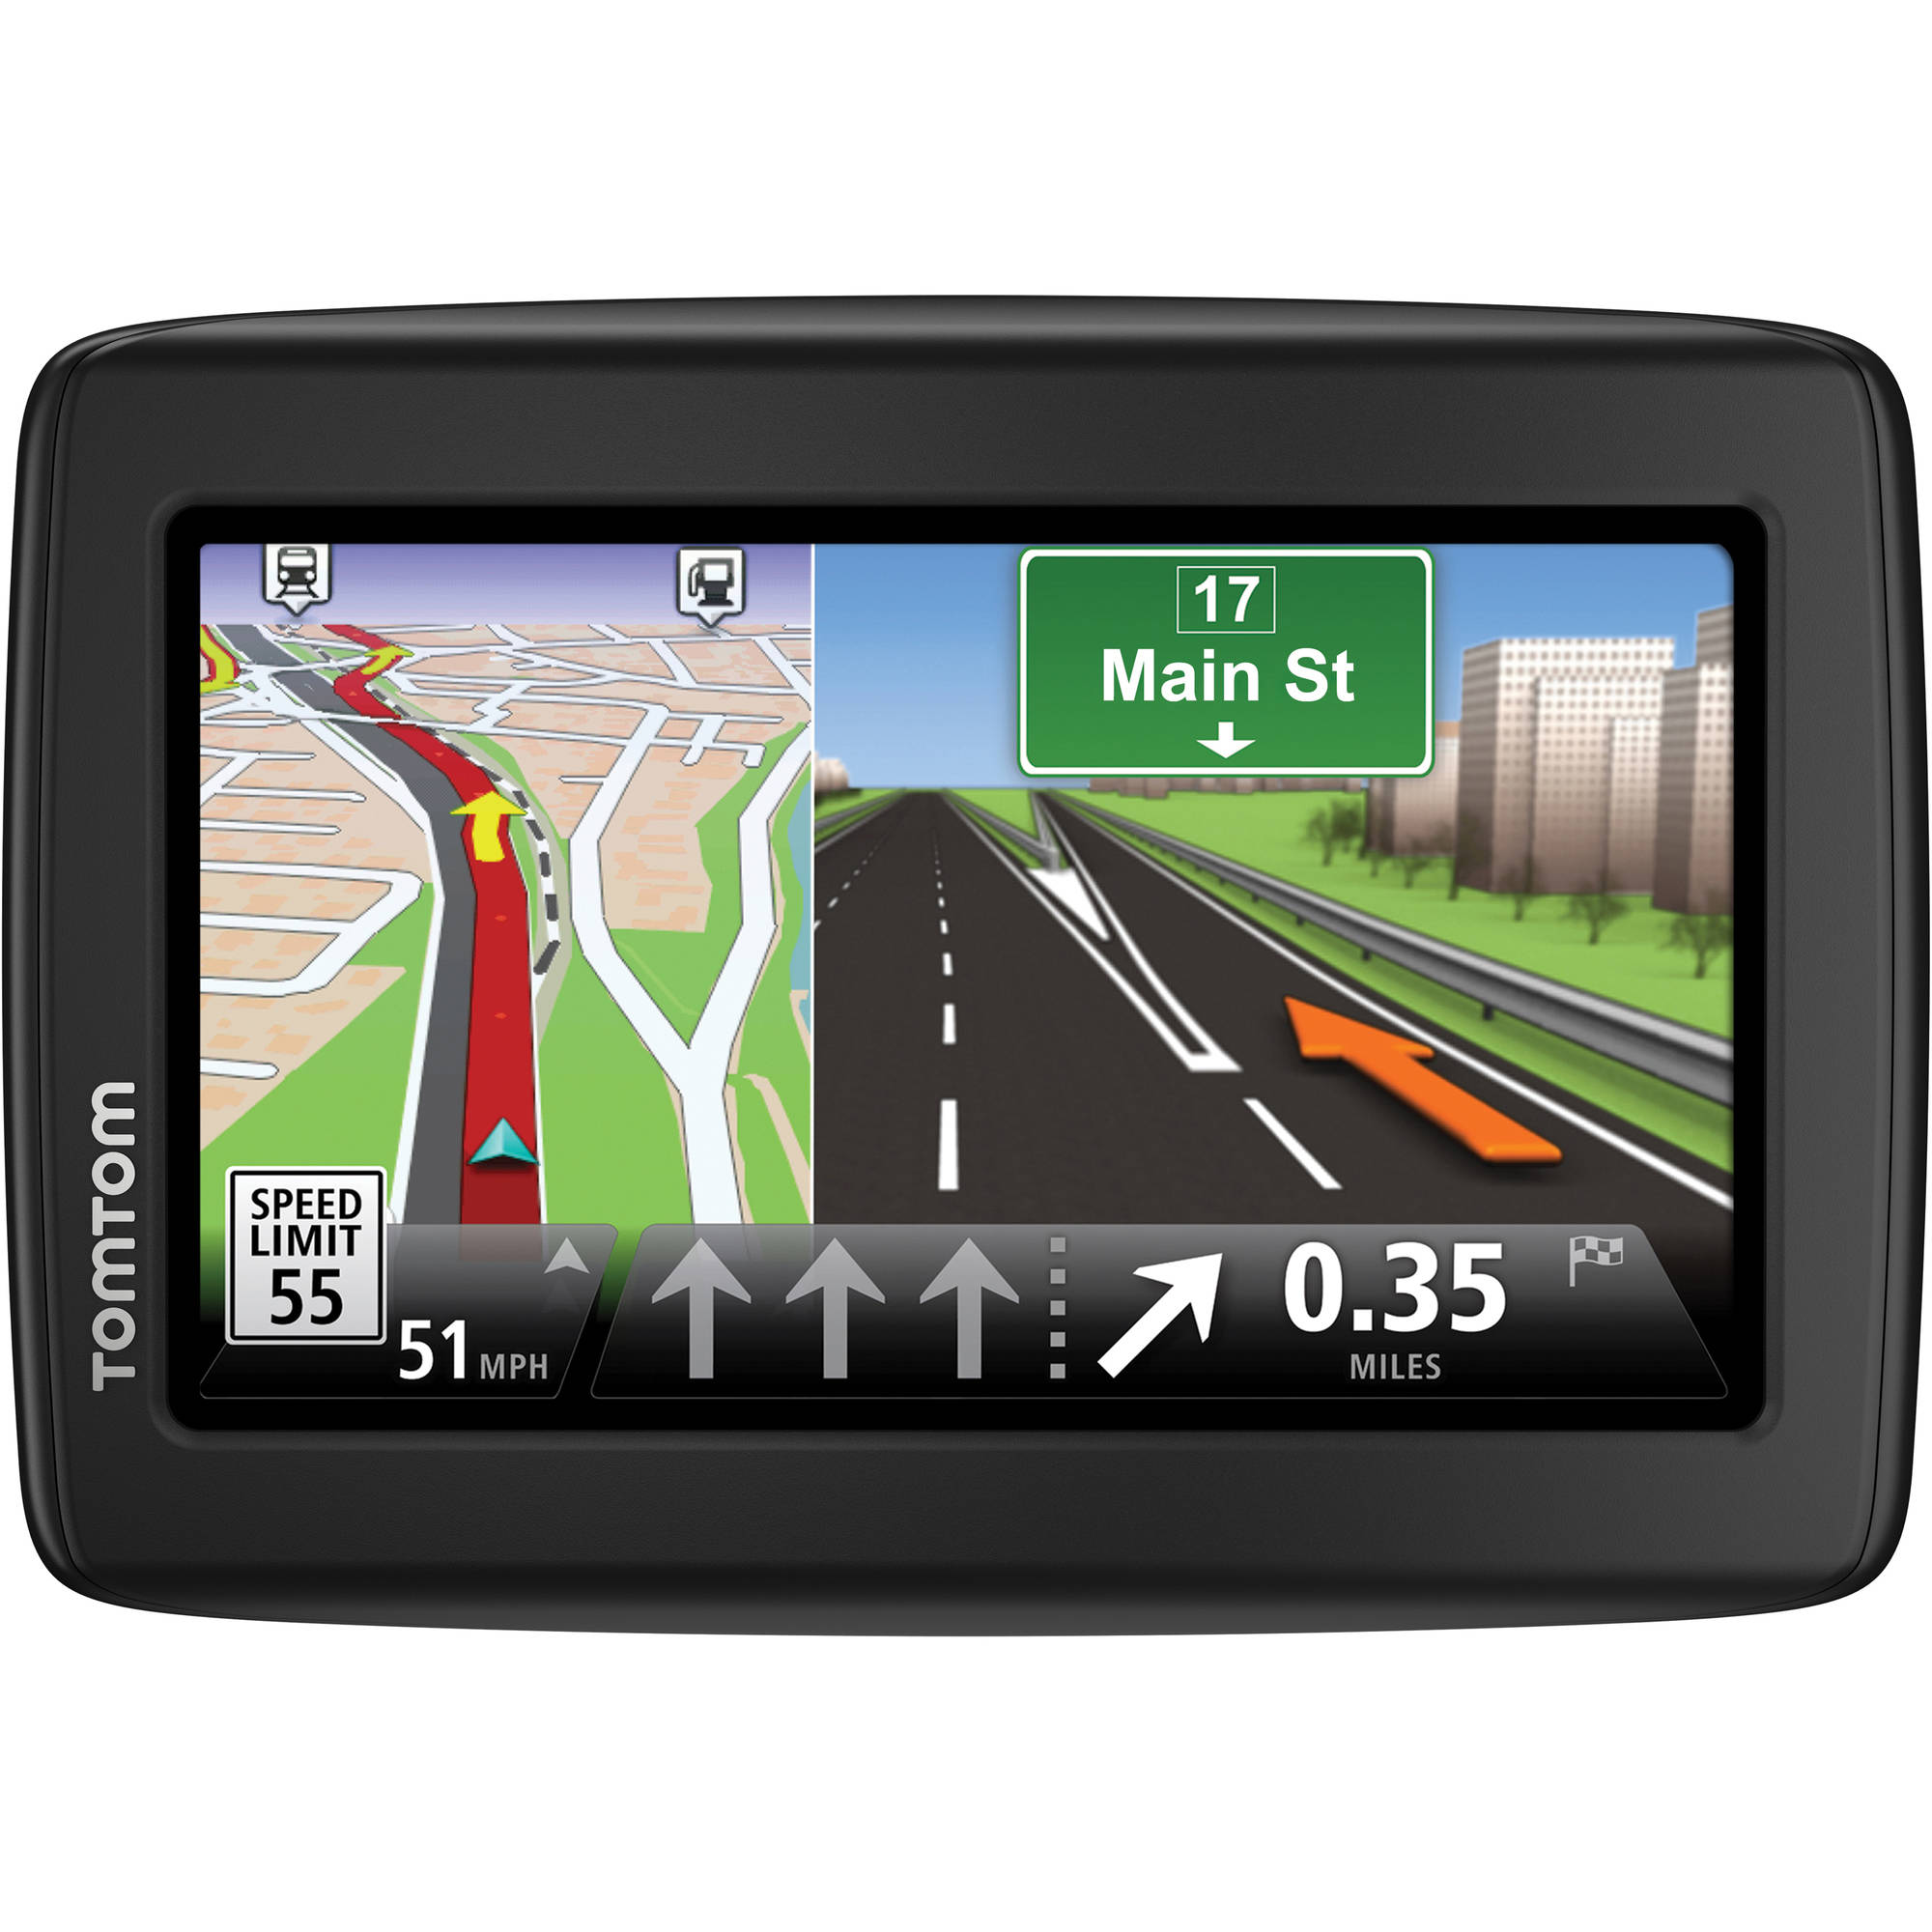 TomTom VIA 1415M GPS Device, US Only by TomTom